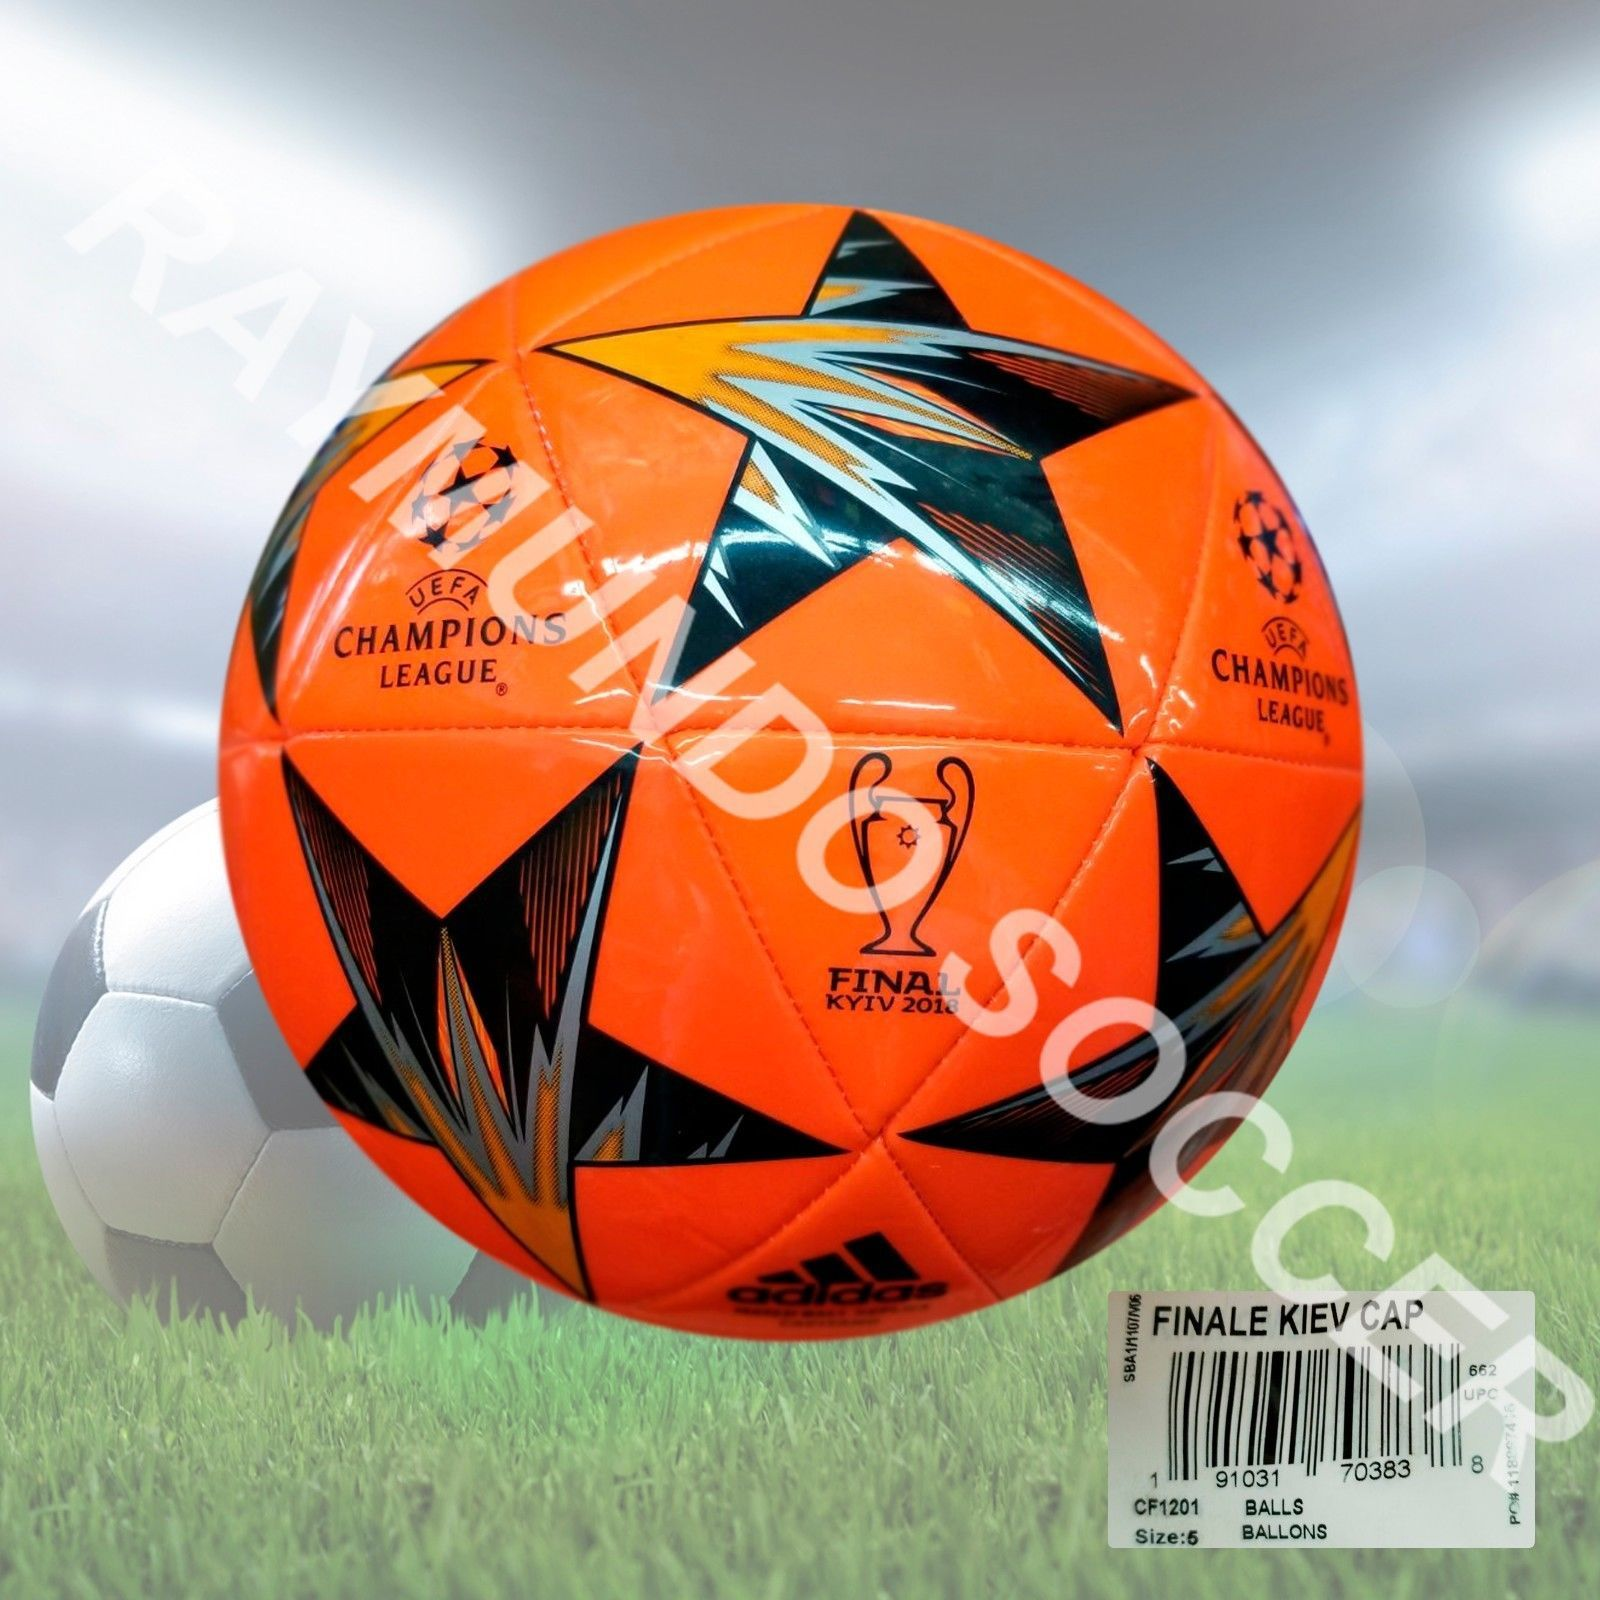 Balls 20863  Adidas Soccer Ball Match Champions League Final Kiev 2018  Capitano Orange -  BUY IT NOW ONLY   22 on eBay! 2da1167a66782